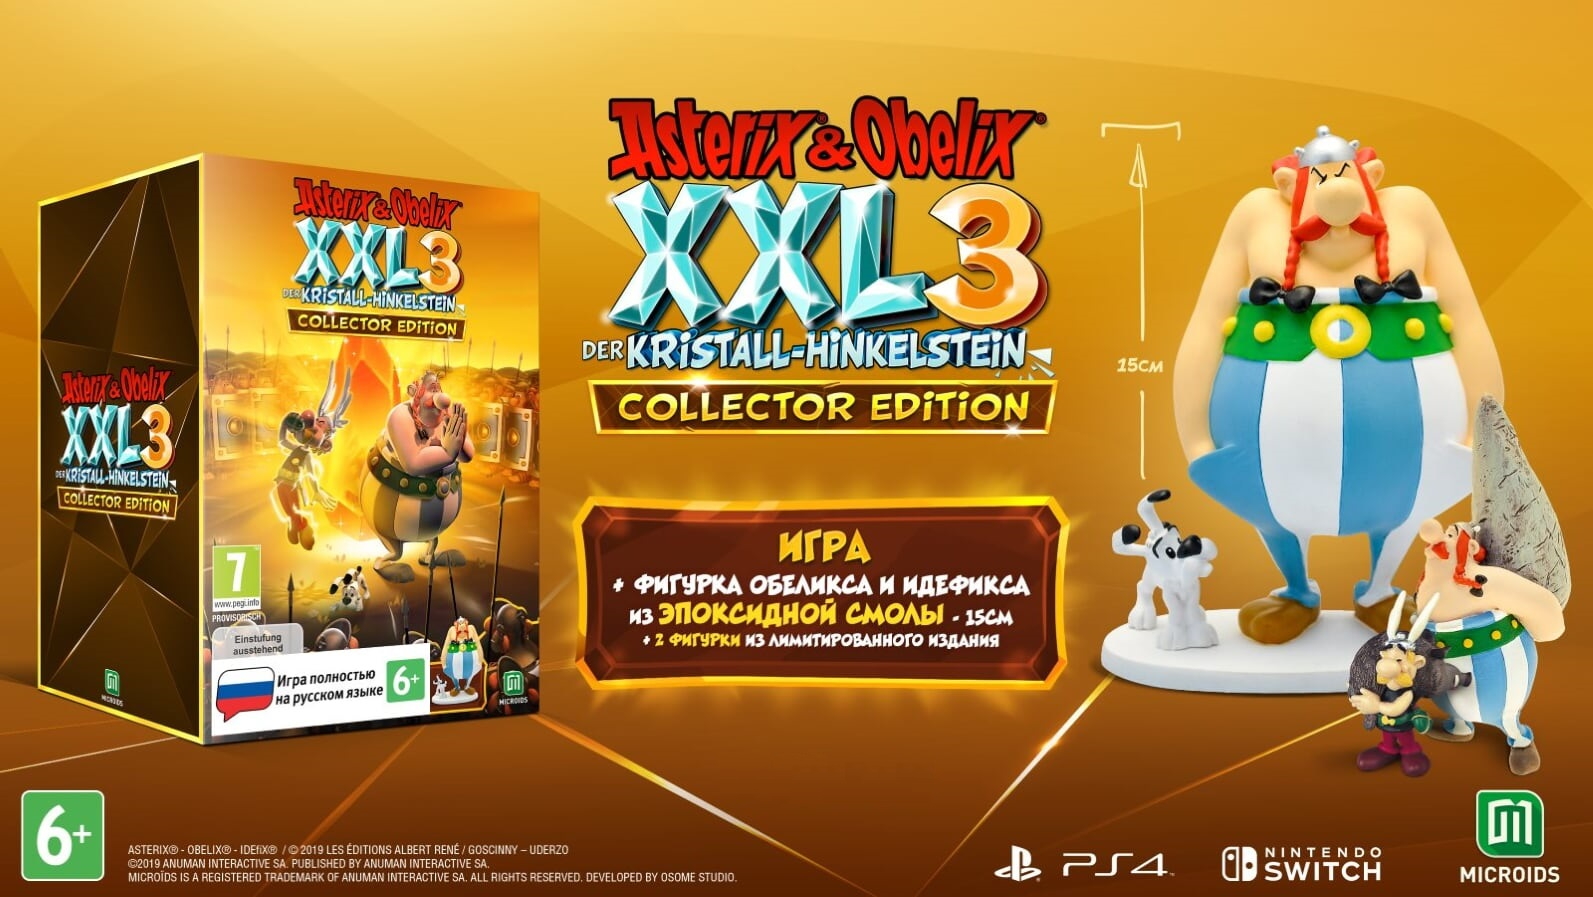 Игра Asterix and Obelix XXL3 The Crystal Menhir. Collector Edition для Nintendo Switch